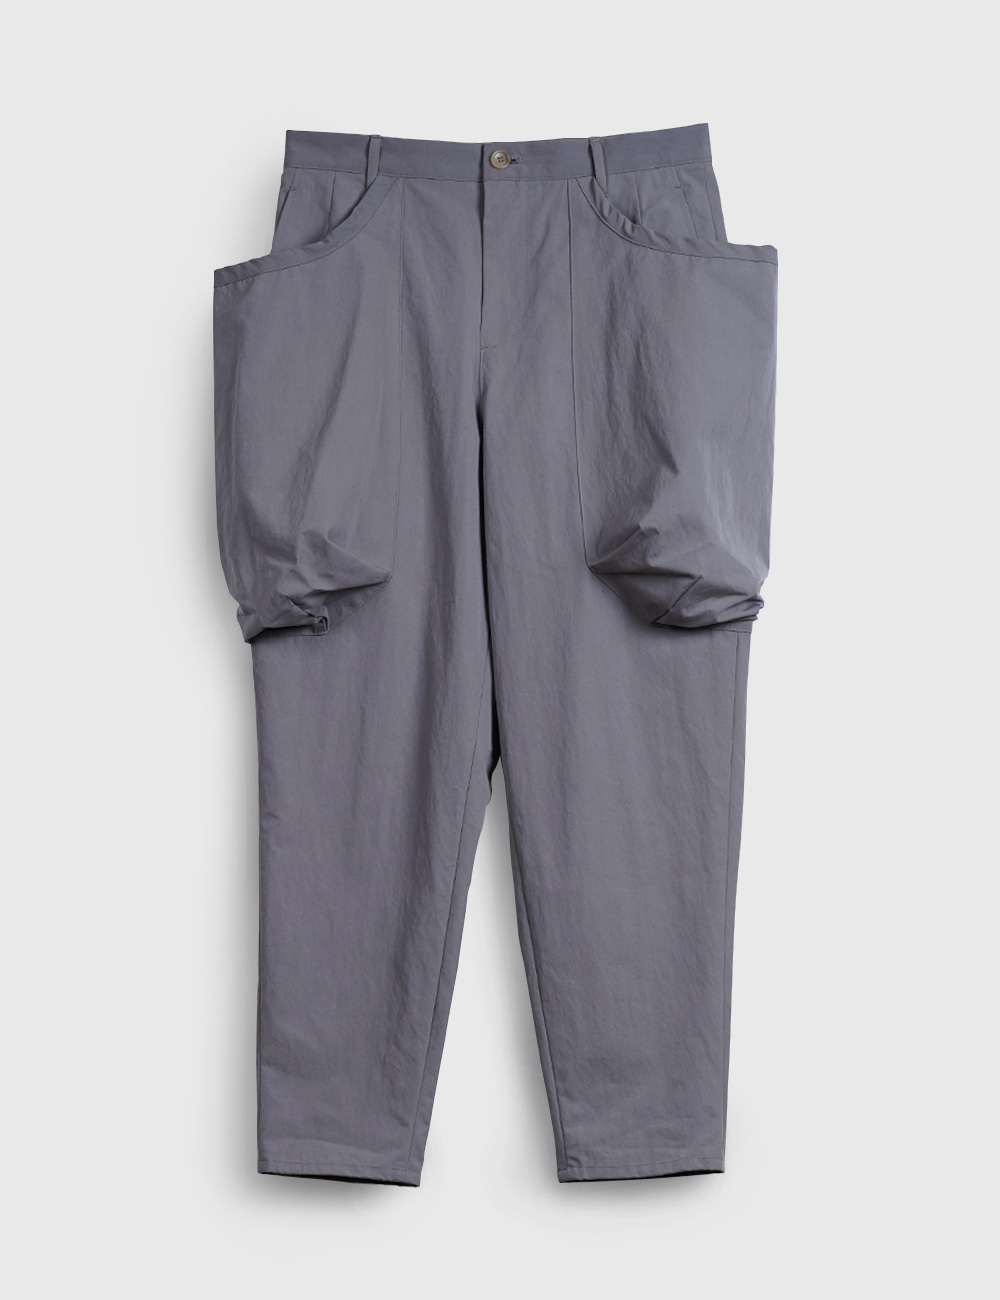 POCKET PANTS (GRAY)